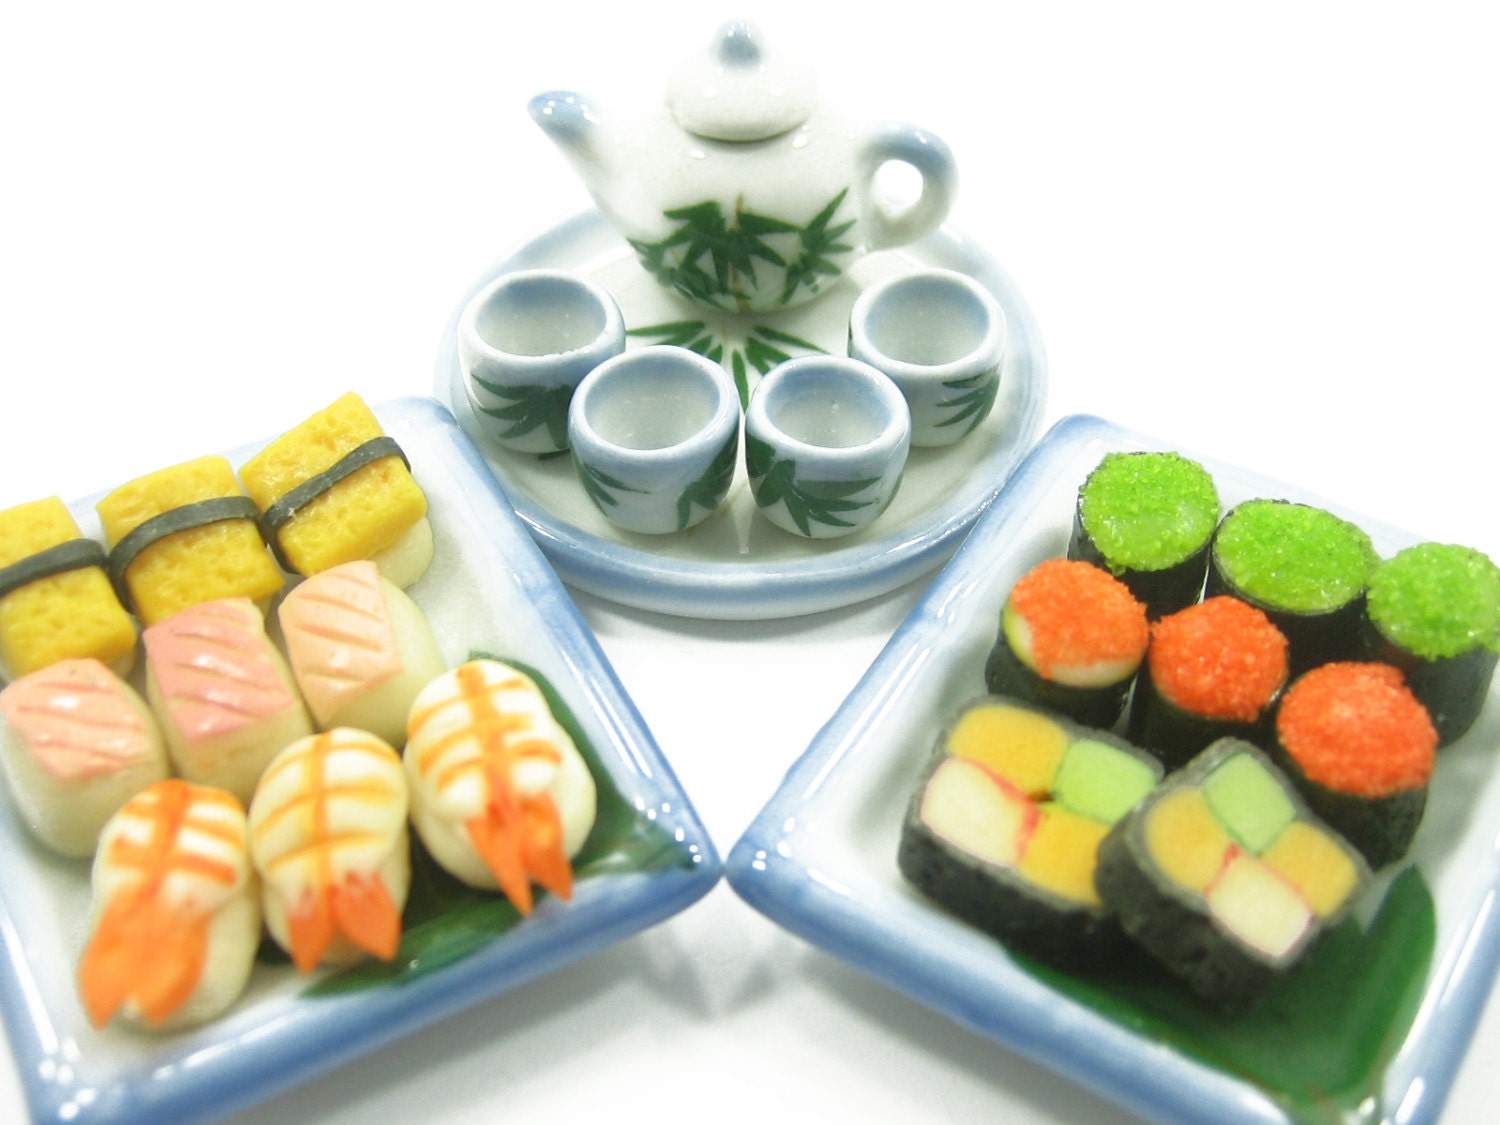 Dolls House Miniature Food Japanese Sushi Tea Set On Ceramic Plates Type H Supply Deco - 6342